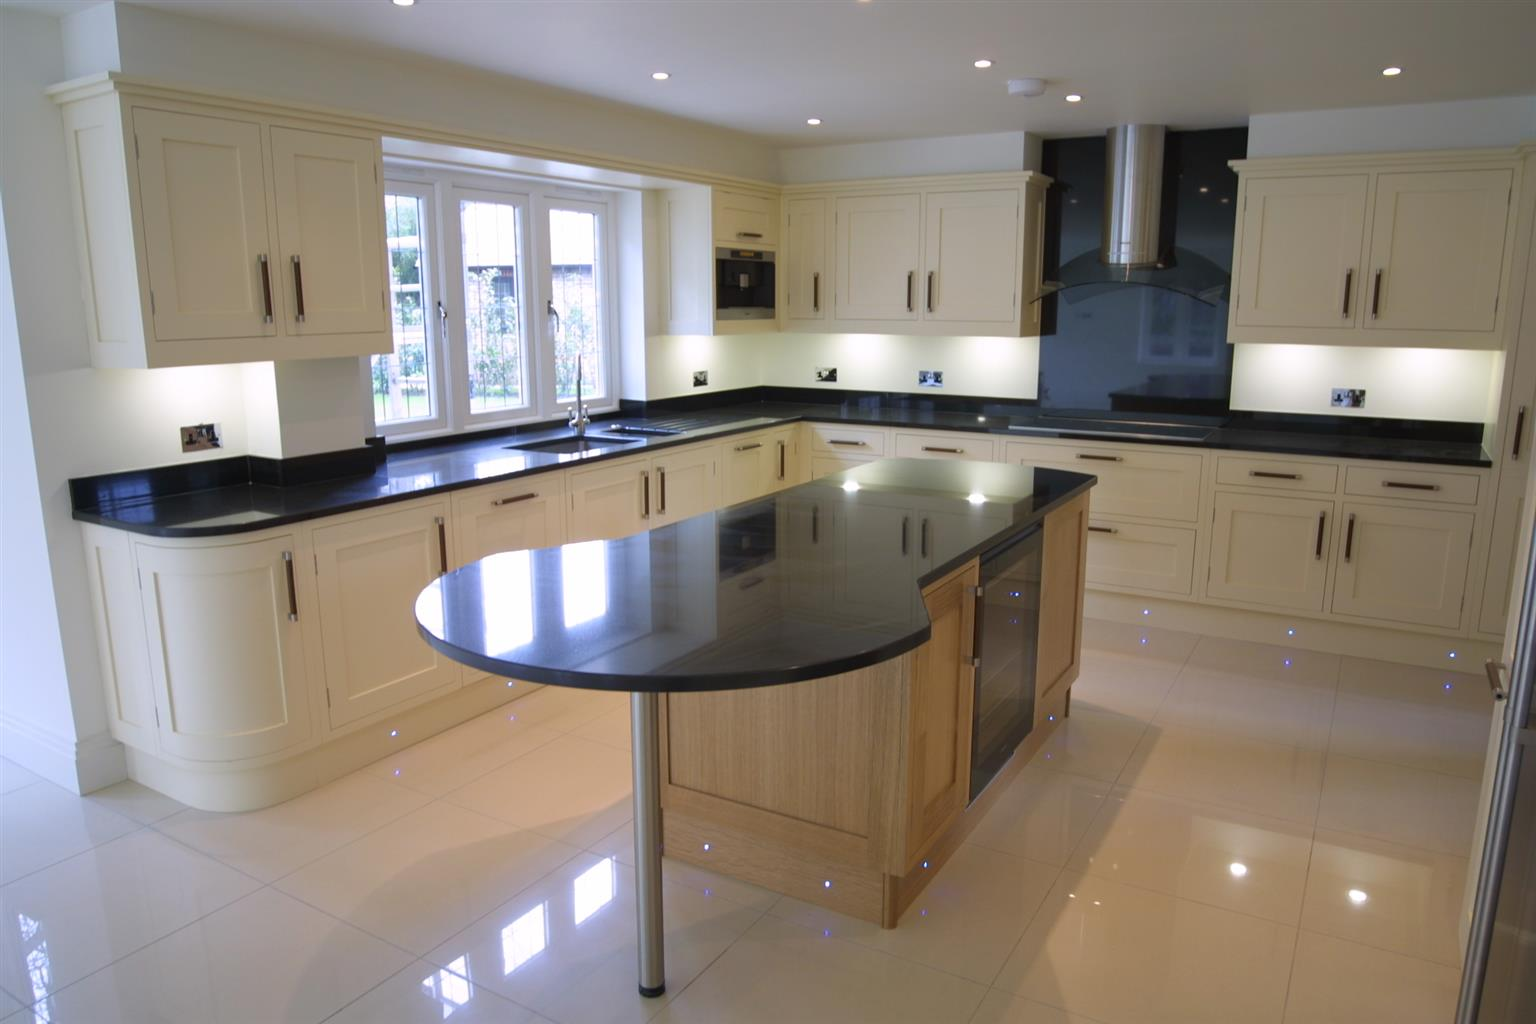 AFFORDABLE, QUALITY KITCHEN TOPS